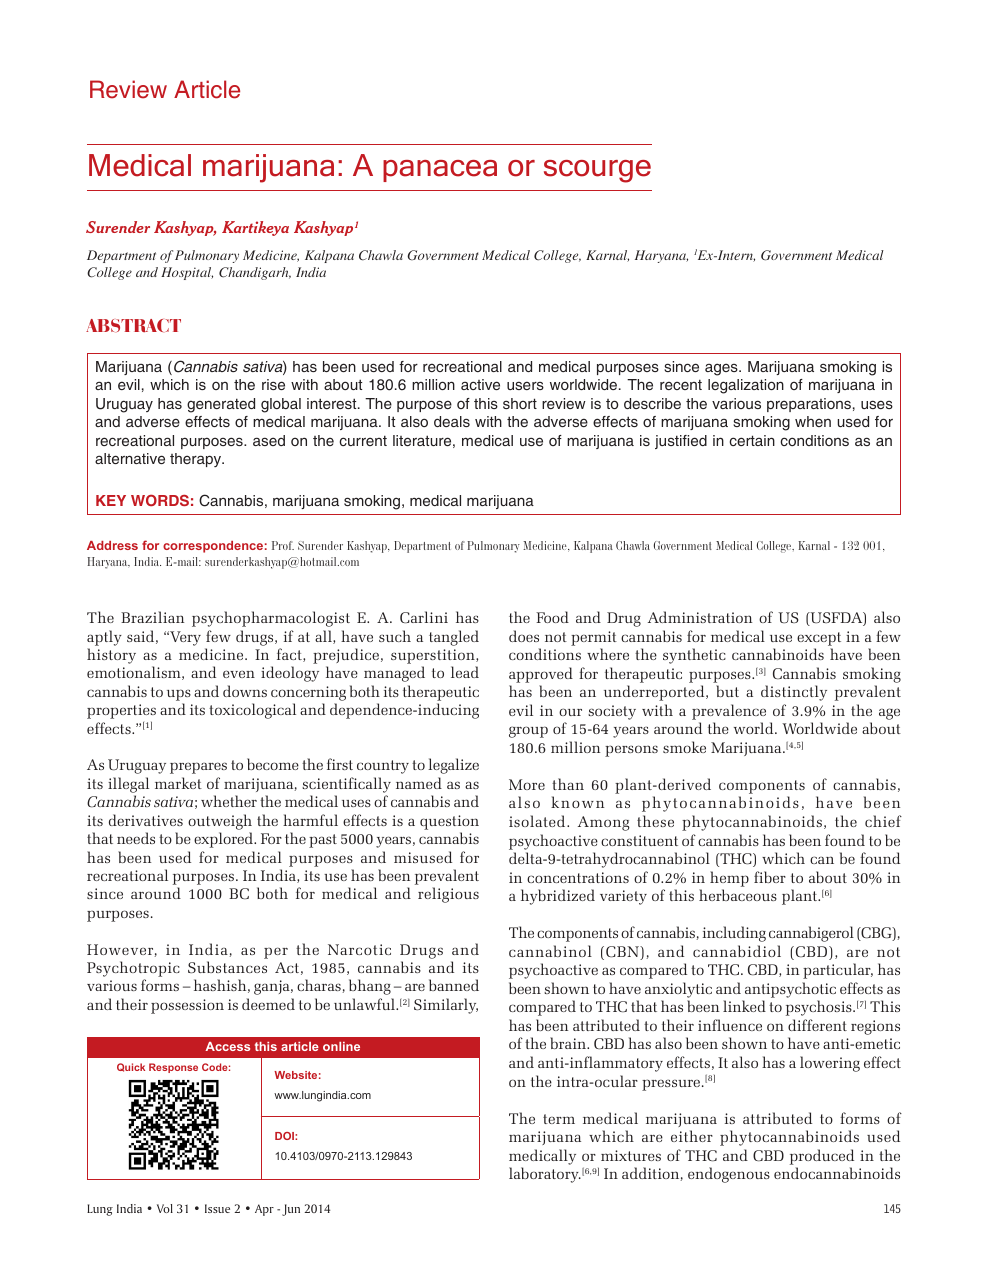 Medical Marijuana Research Paper